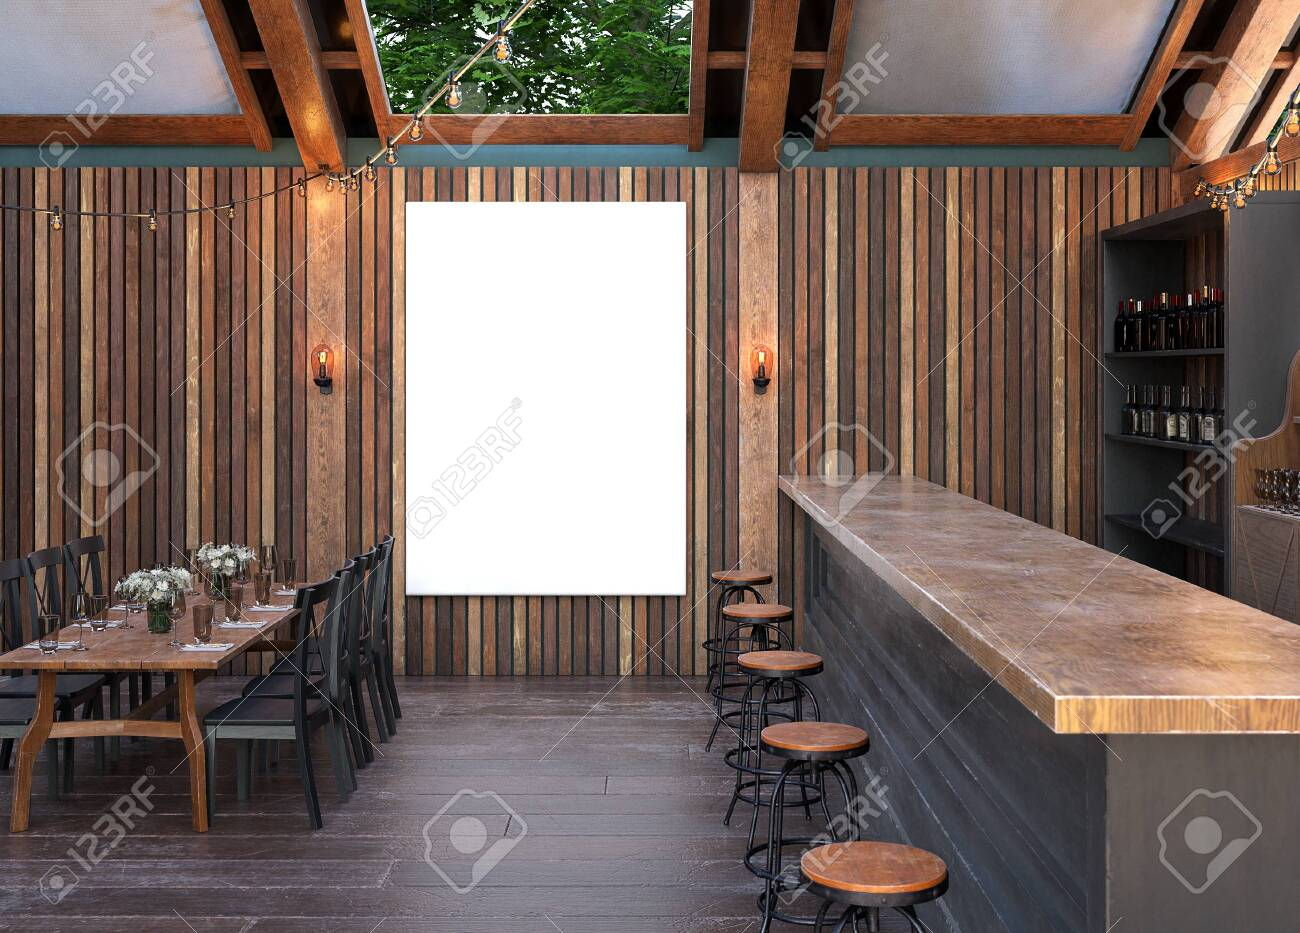 Mock Up Poster Frame In Cafe Interior Background Modern Outdoor Stock Photo Picture And Royalty Free Image Image 120463792